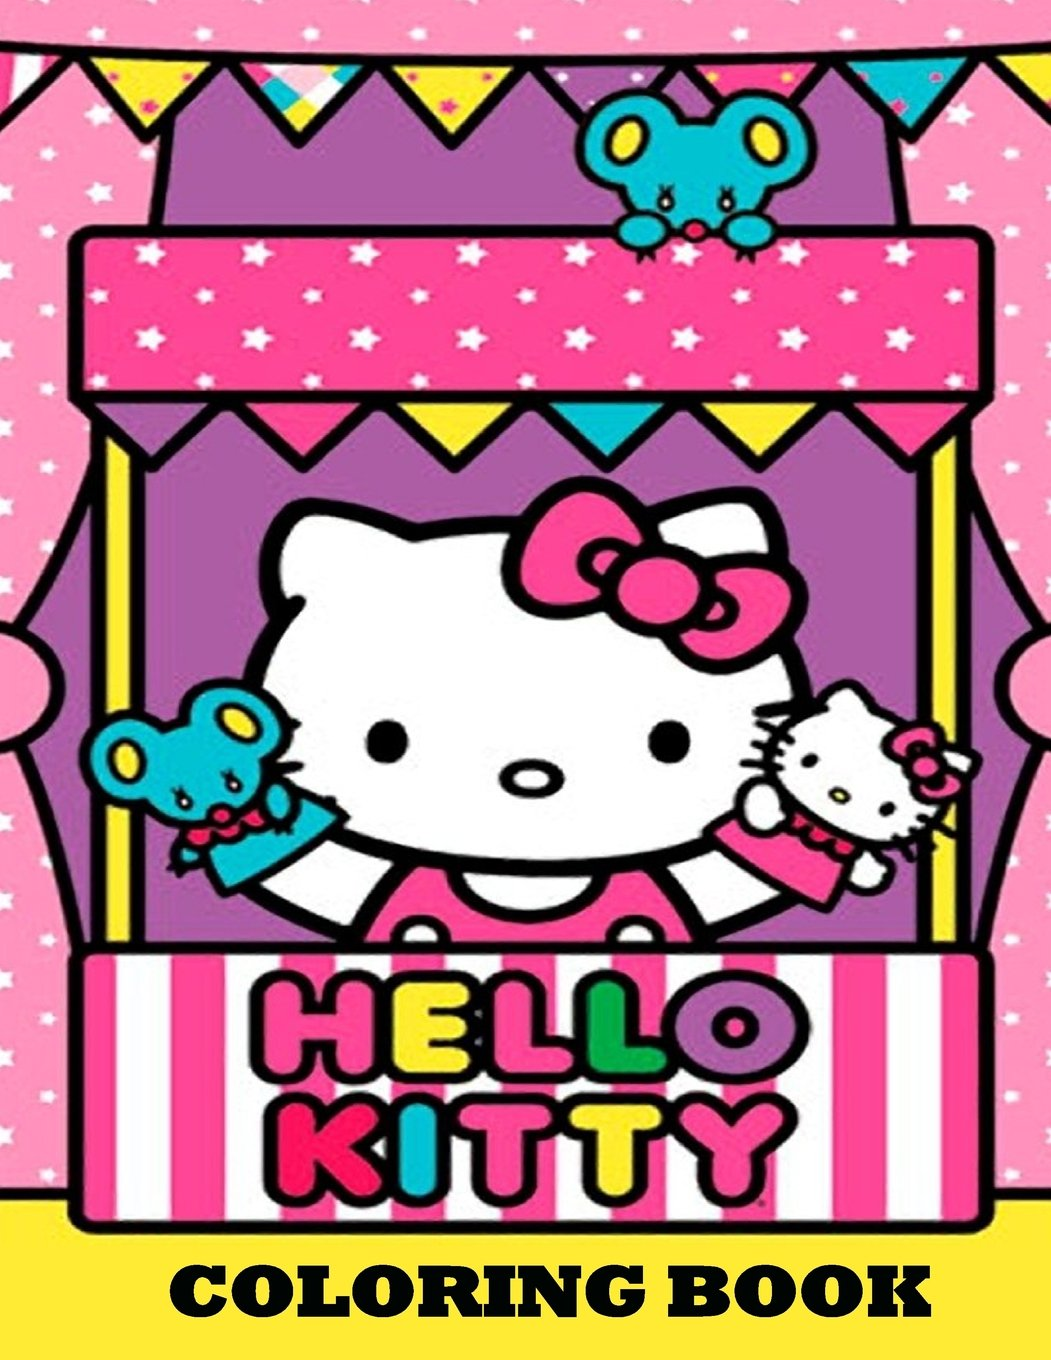 Read Online Hello Kitty Coloring Book: Coloring Book for Kids and Adults, This Amazing Coloring Book Will Make Your Kids Happier and Give Them Joy (Best ... Books for Adults and Kids 2-4 4-8 8-12+) PDF